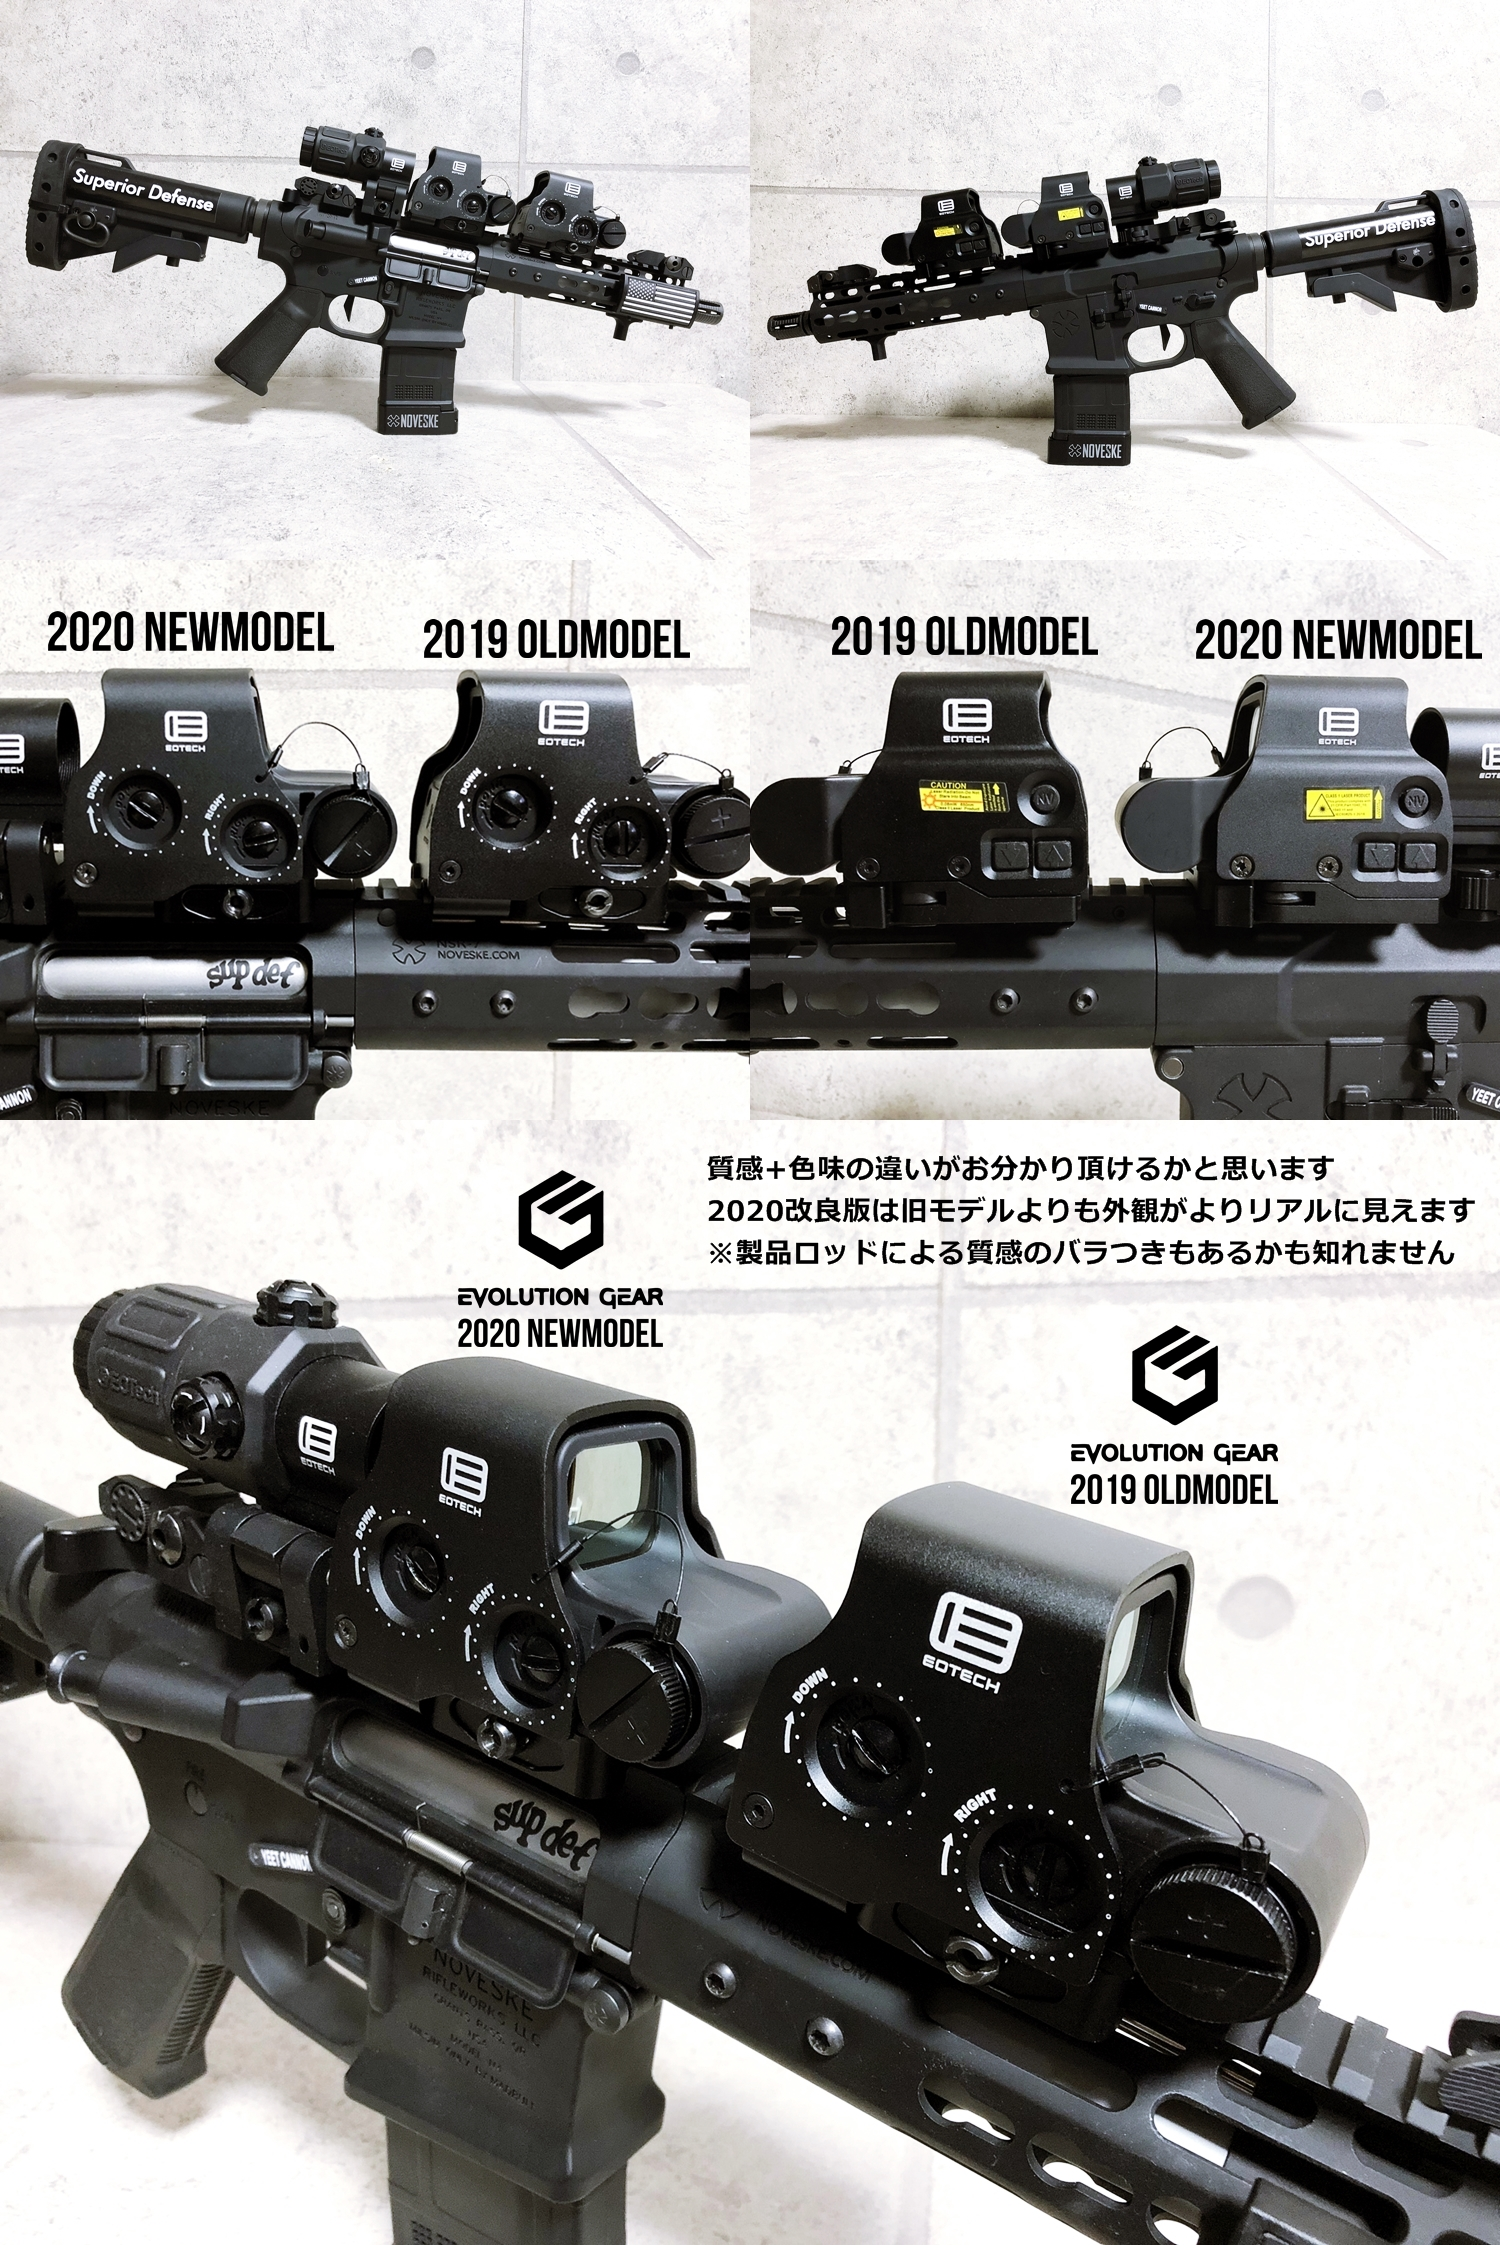 13 EVOLUTION GEAR 2020 改良版 EOTech EXPS3-0 NEW!! 最新リアルバージョンの改良点を徹底検証だ!! 新エボギア & 旧エボギア & 実物 イオテック ホロサイト!! 開封 比較 検証 取付 レビュー!!